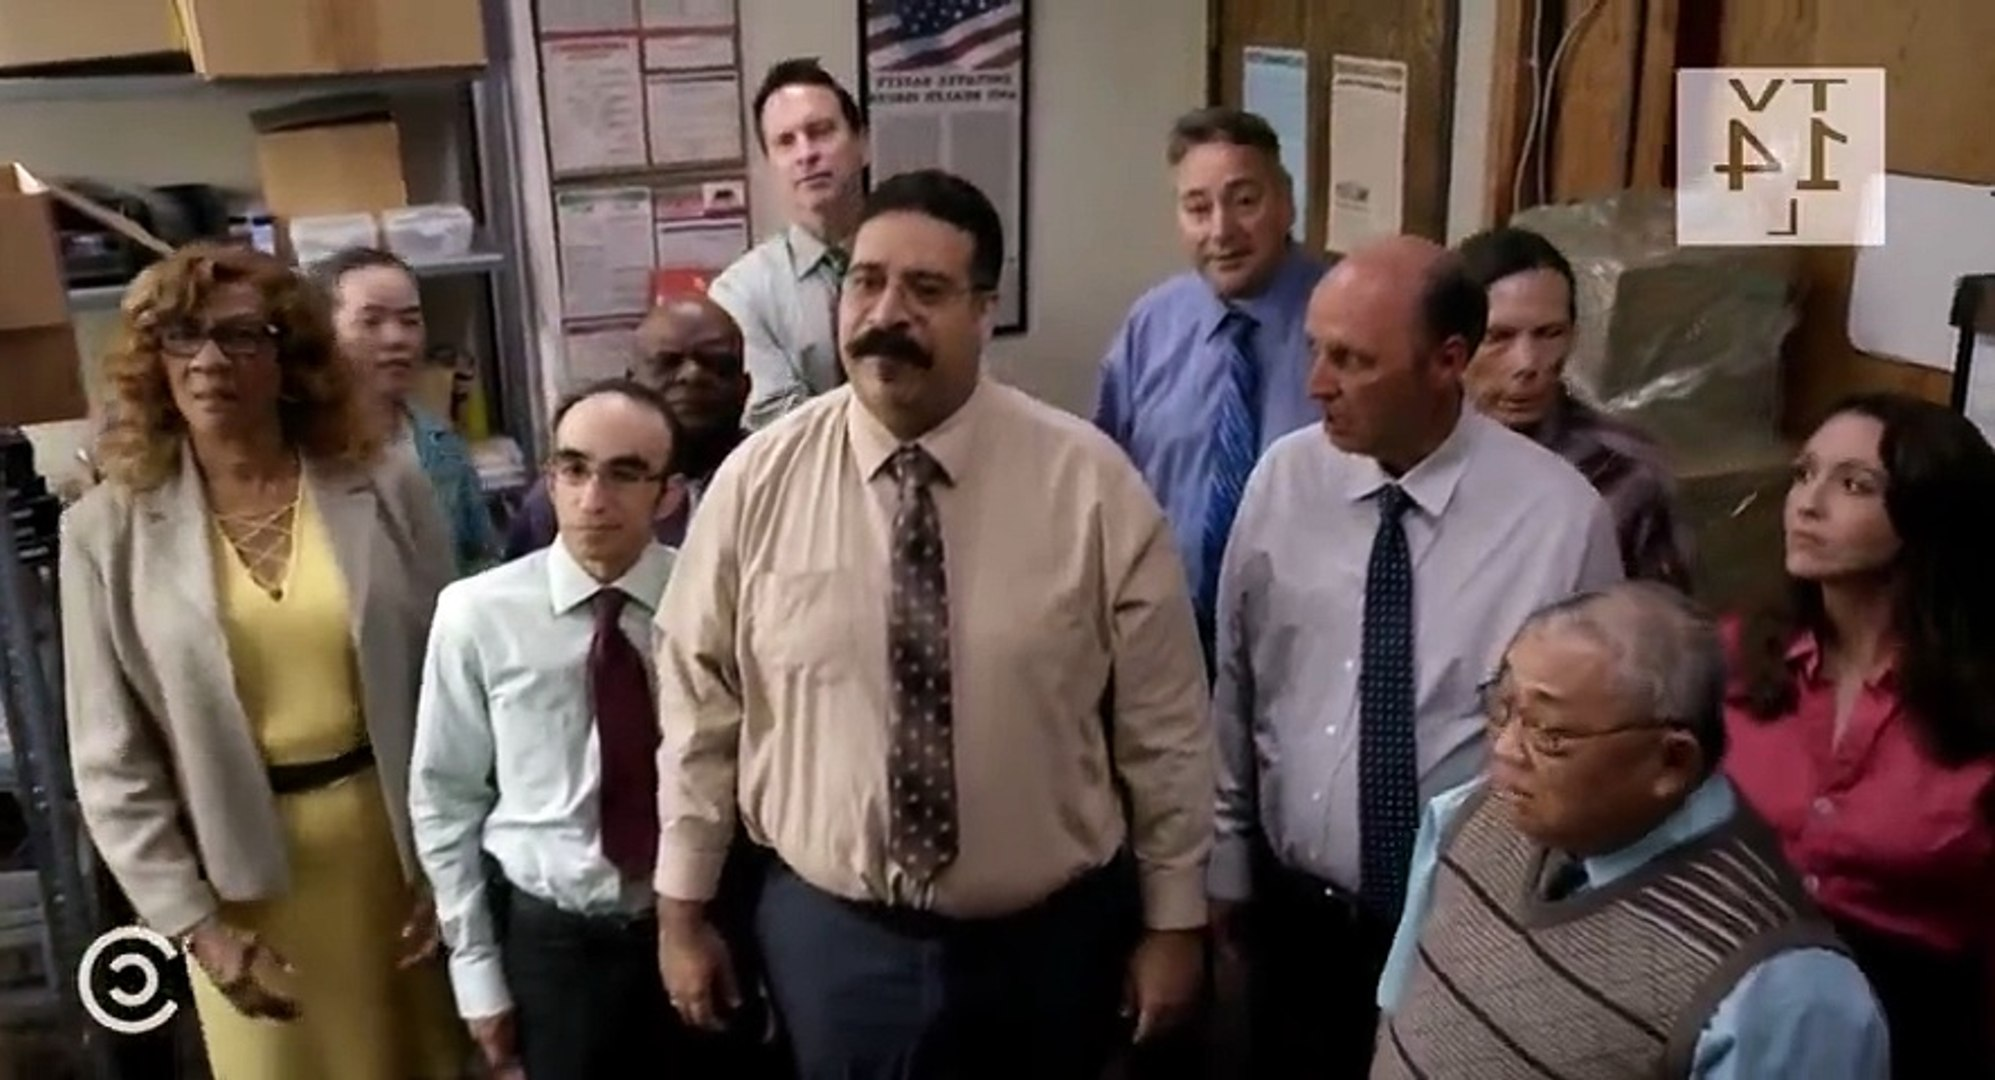 Workaholics S07xxE02 Weed the People HD Watch